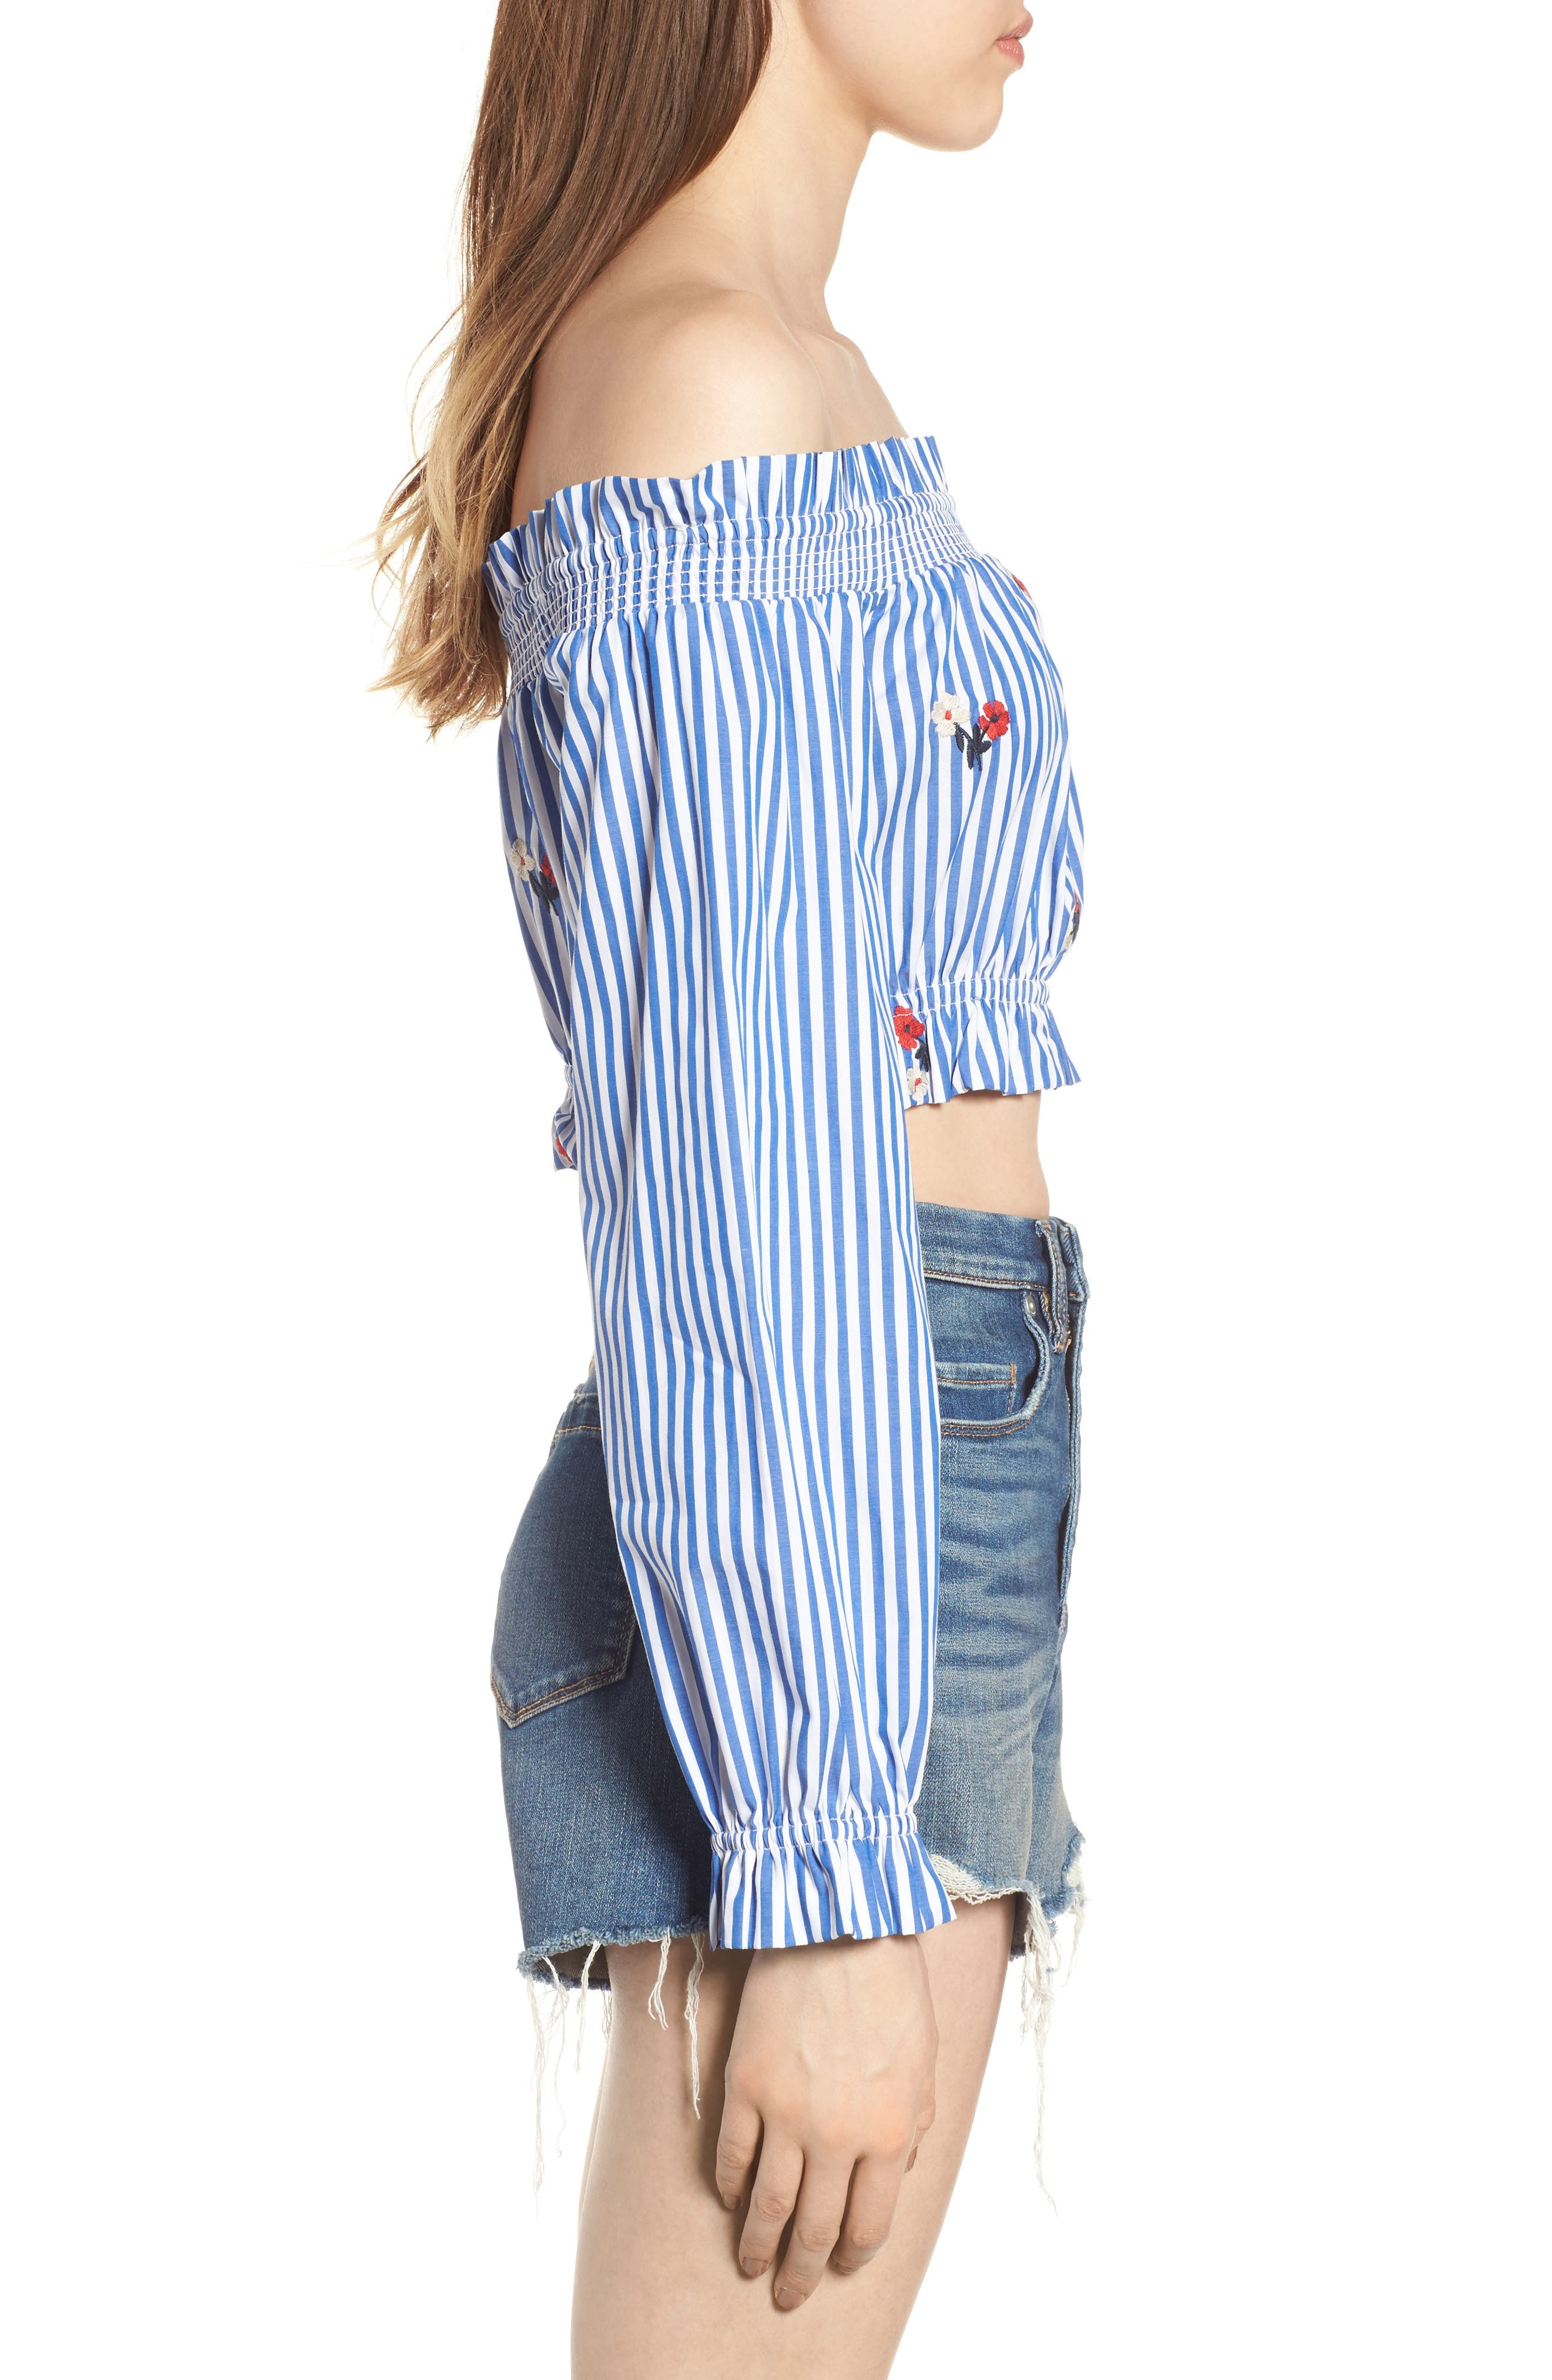 Chloe + Katie Embroidered Off the Shoulder Crop Top,                             Alternate thumbnail 3, color,                             Blue/ White Stripe